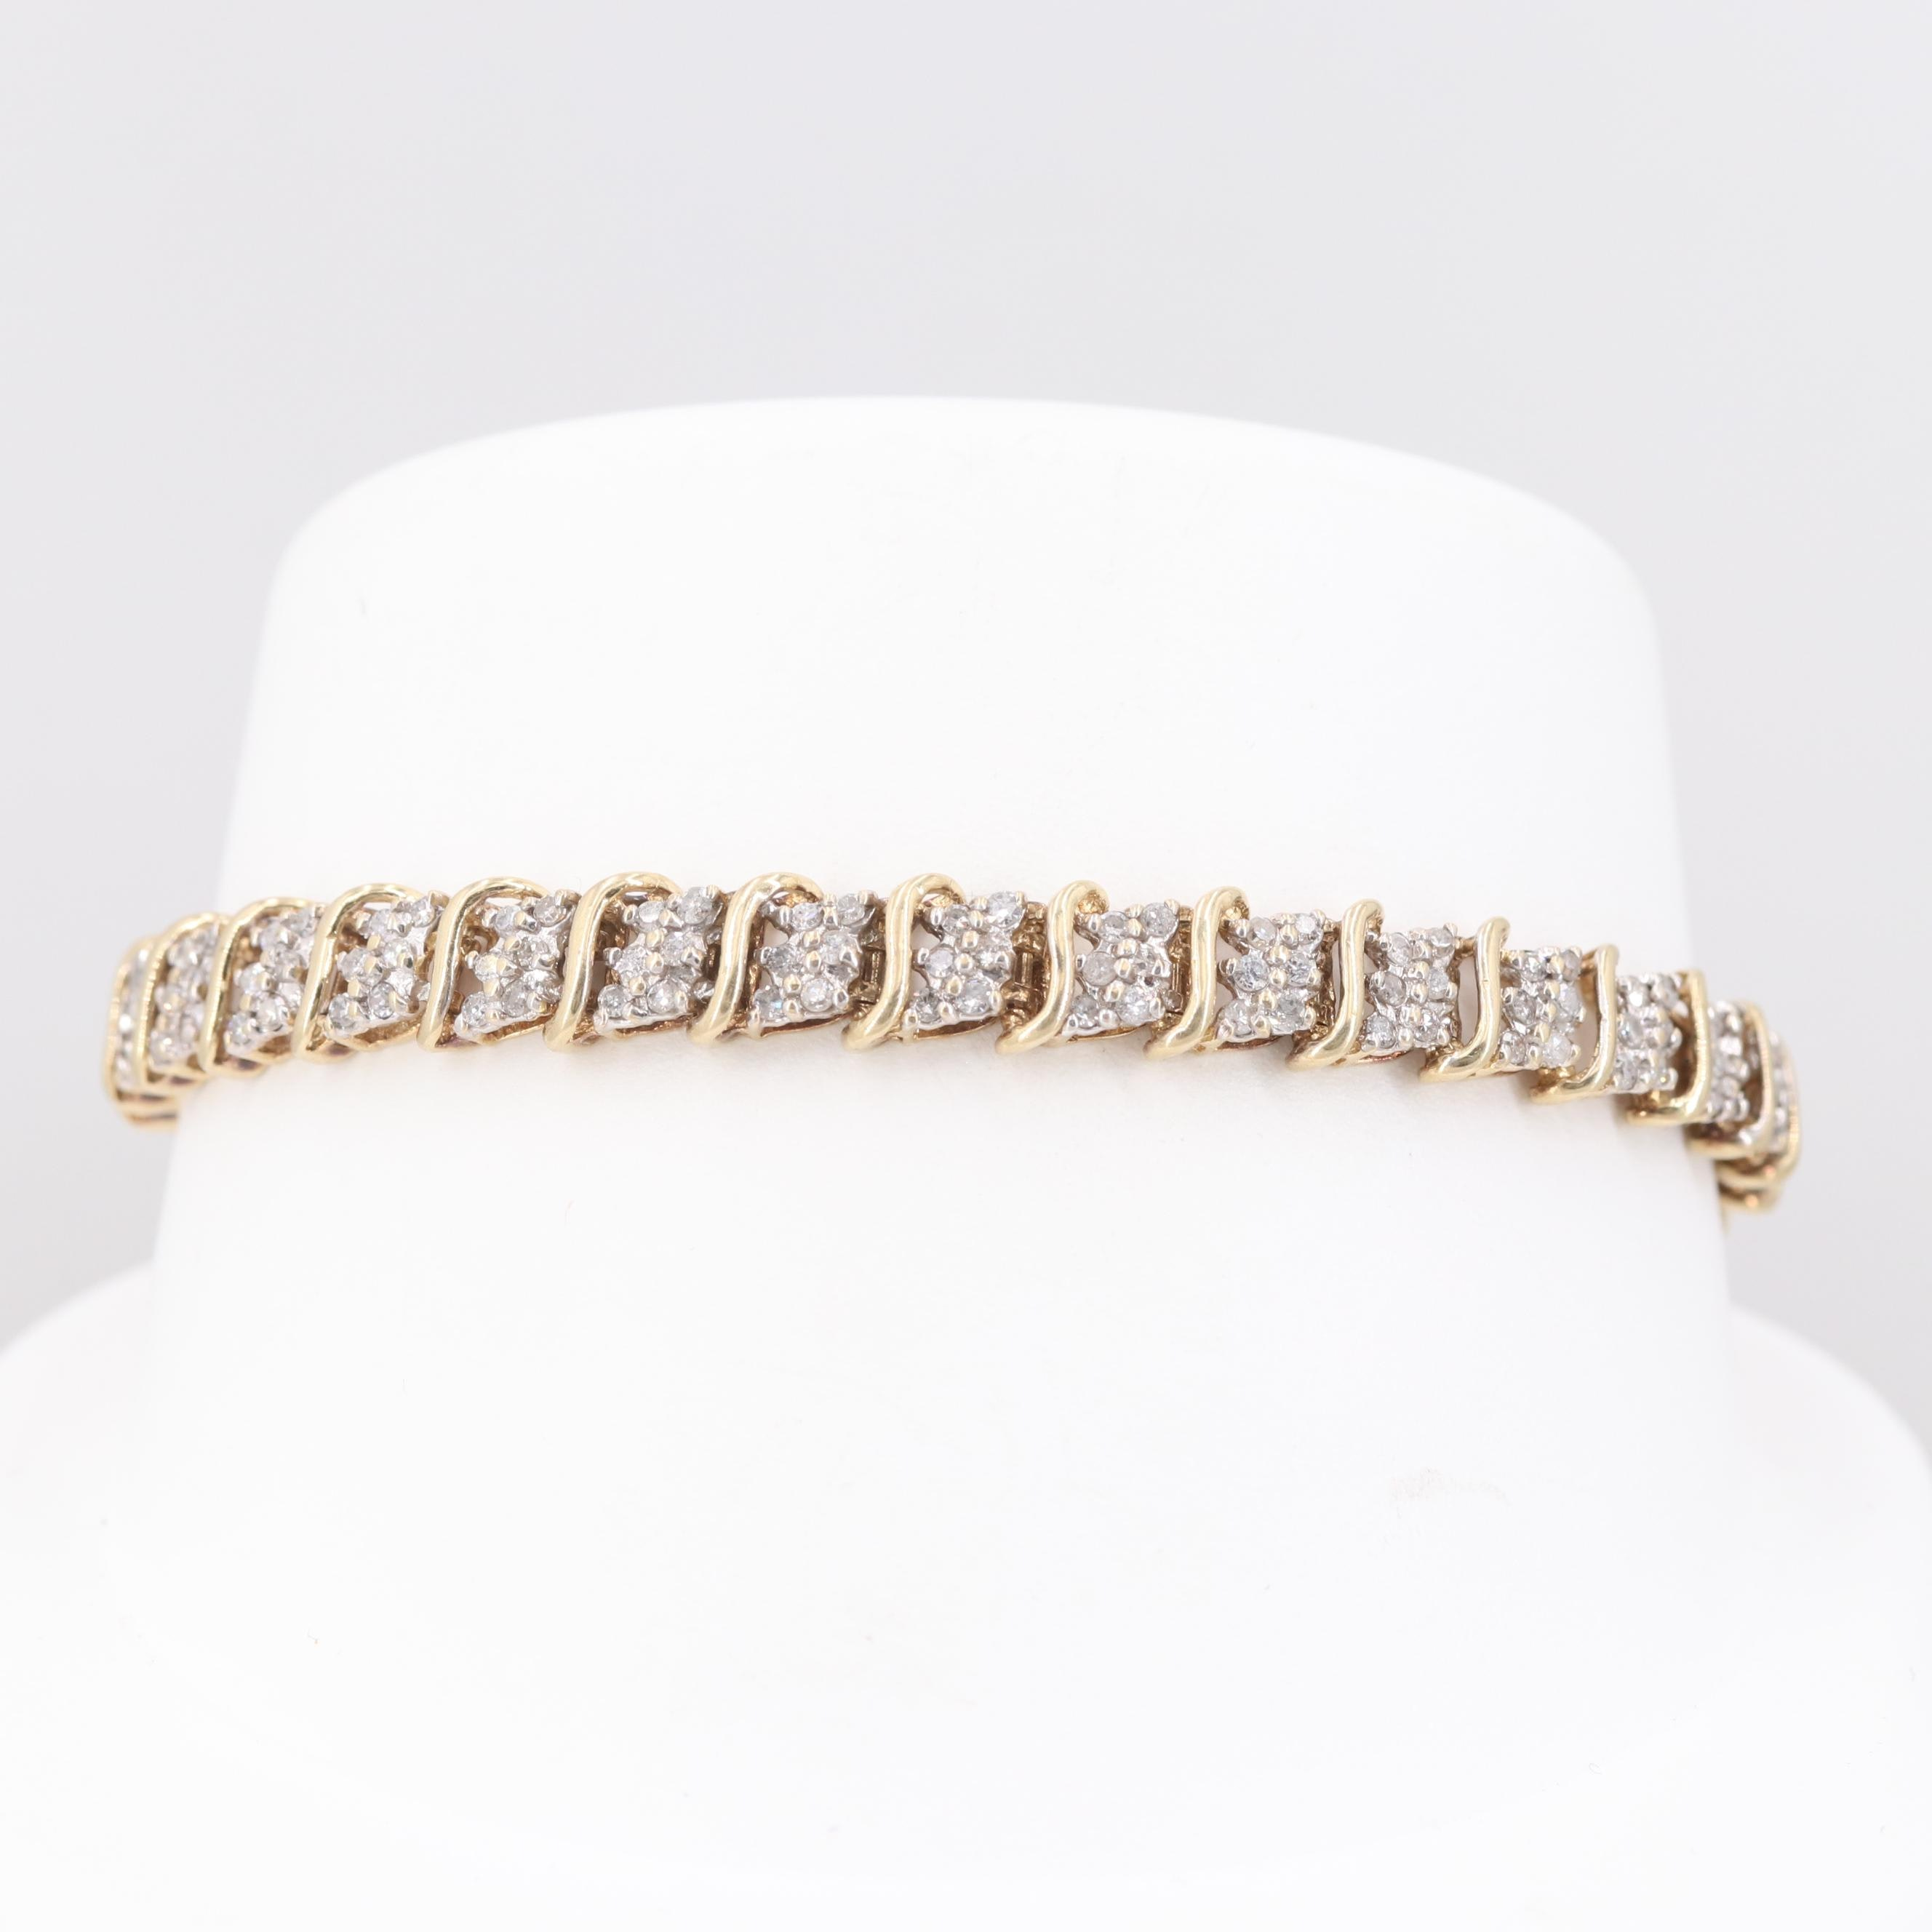 10K Yellow Gold 1.99 CTW Diamond Bracelet